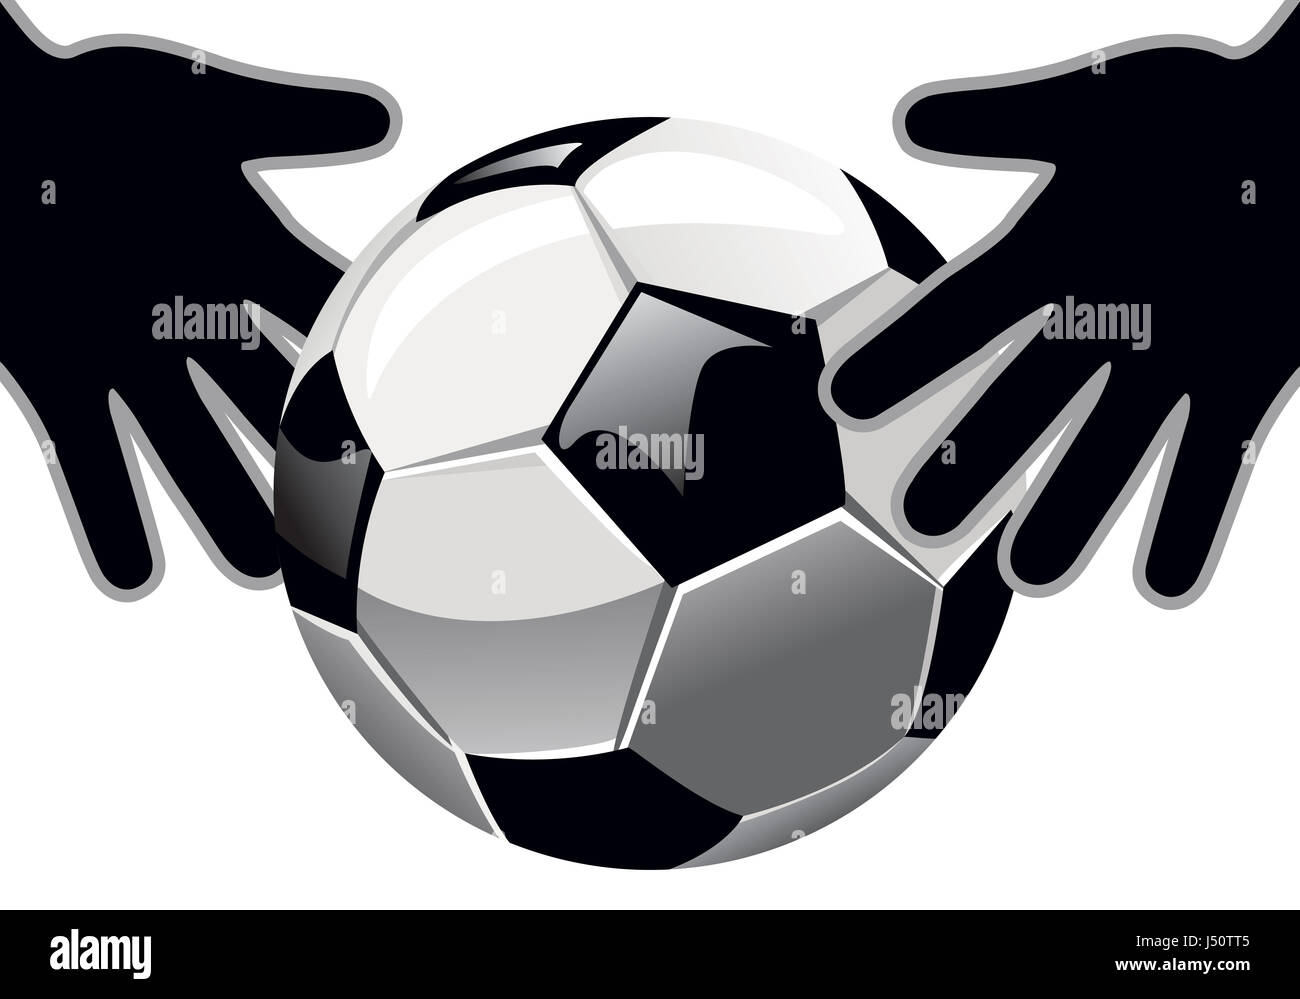 goalkeeper's hands and soccer ball isolated on white background. - Stock Image